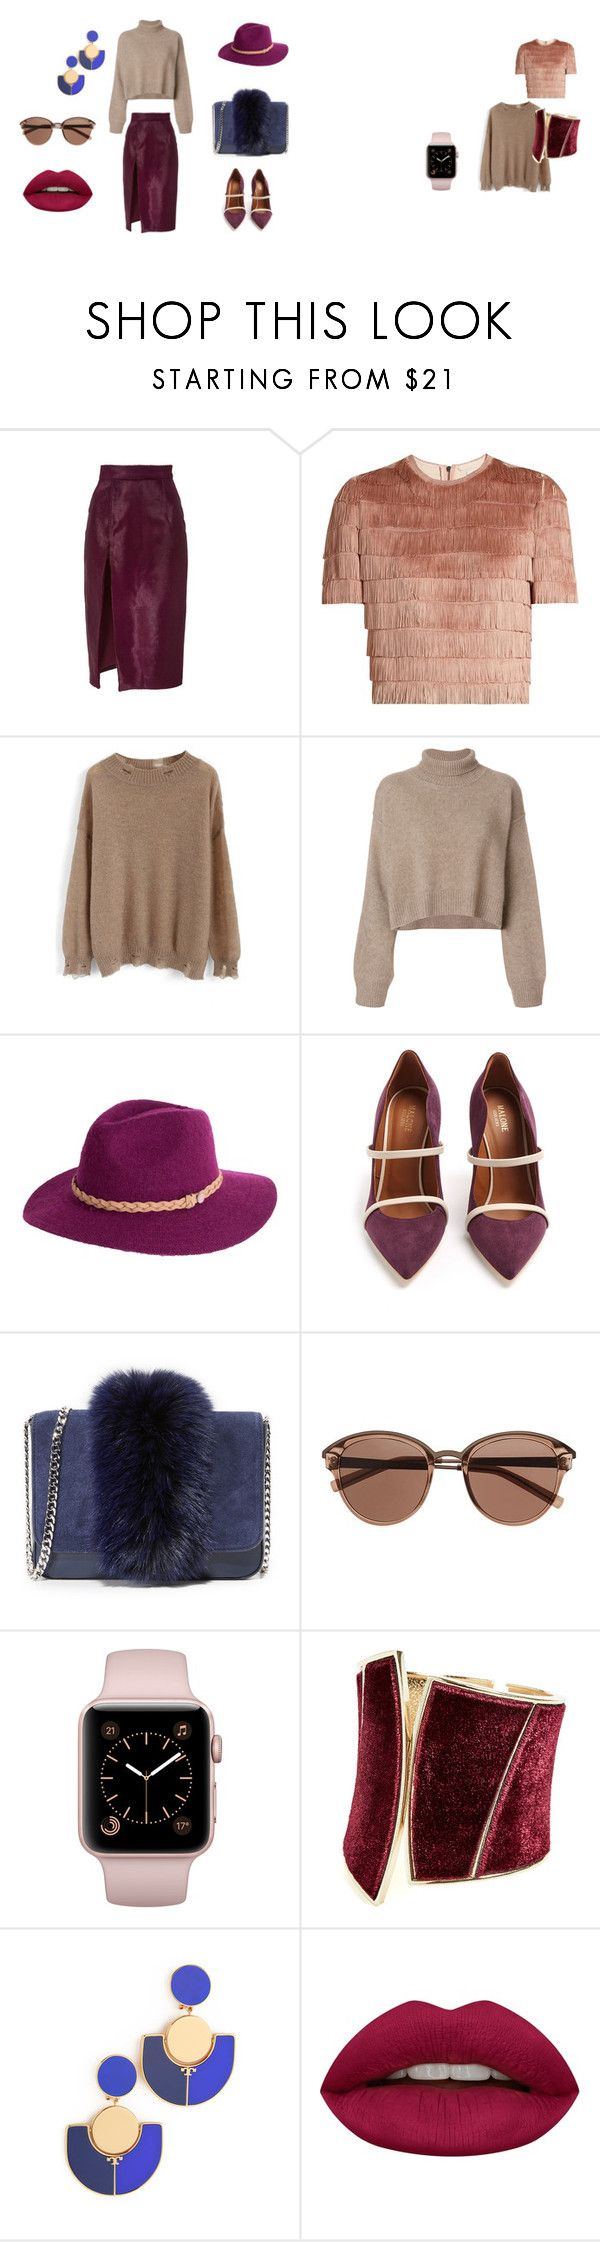 """Разноцветные фактурные вещи"" by beanka100 ❤ liked on Polyvore featuring Brandon Maxwell, Raey, Chicwish, Rejina Pyo, Malone Souliers, Loeffler Randall, Witchery, GUESS by Marciano, Tory Burch and Huda Beauty"